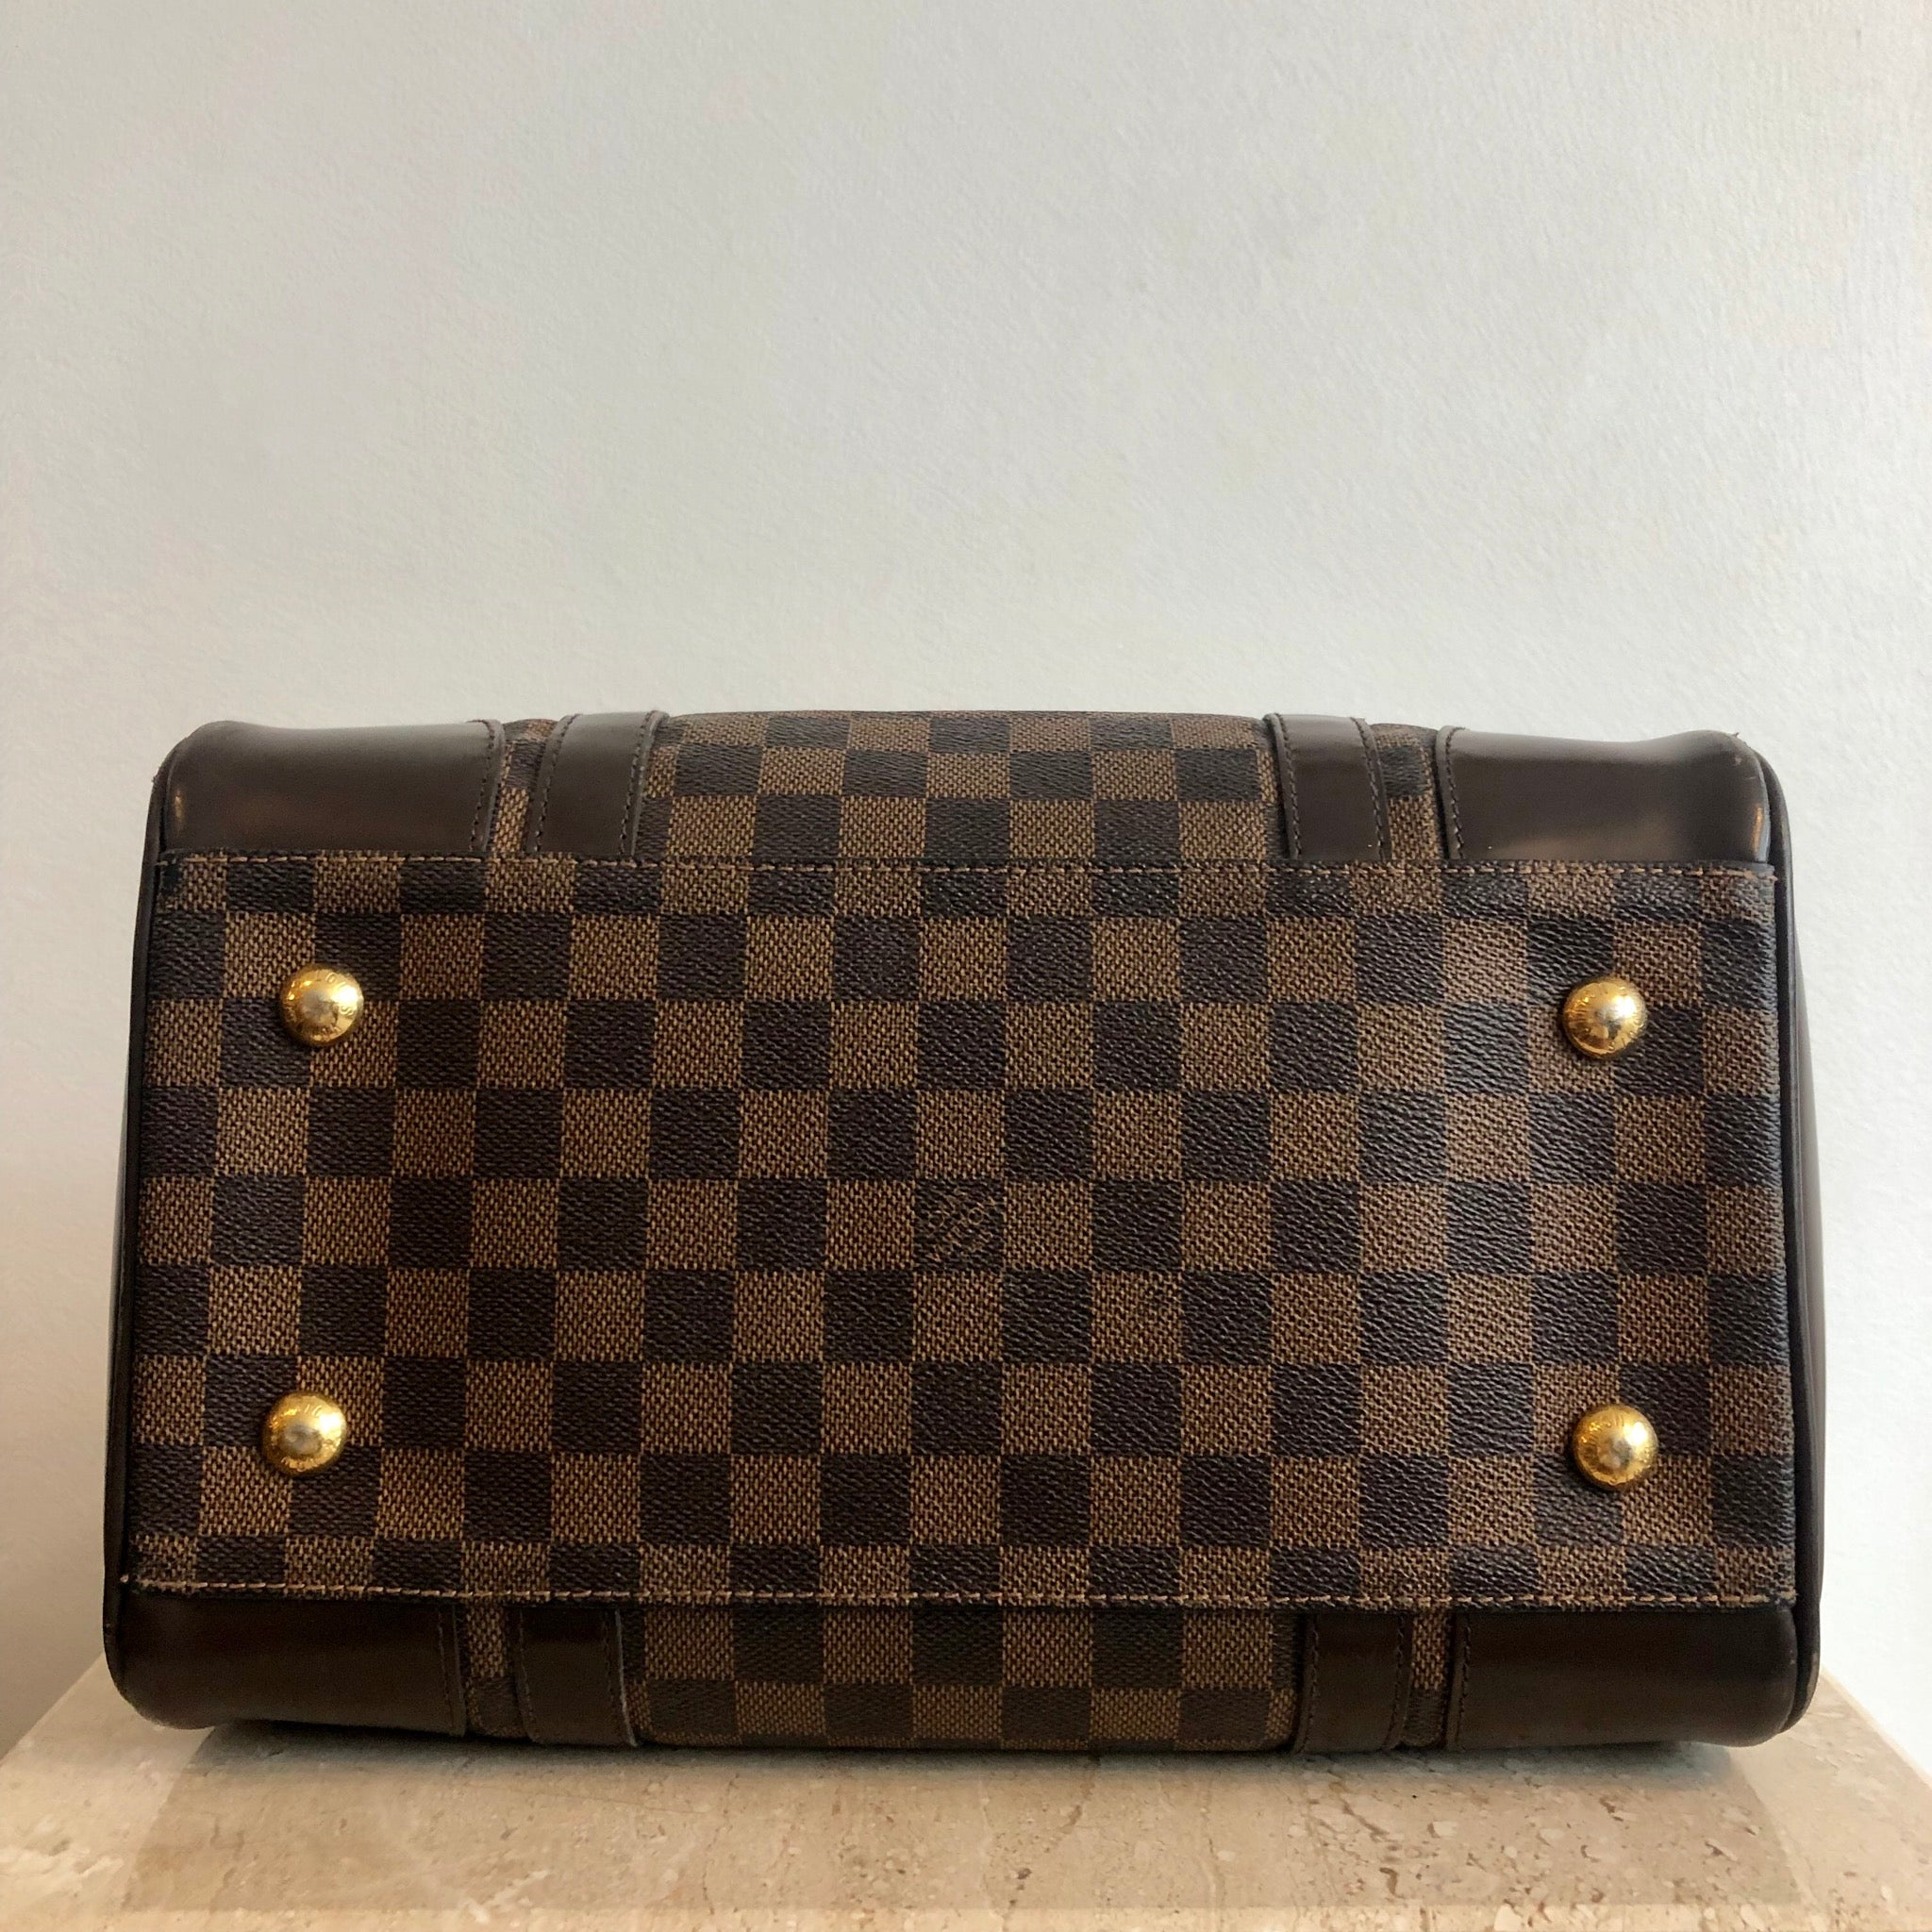 Authentic LOUIS VUITTON Berkely Damier Bag